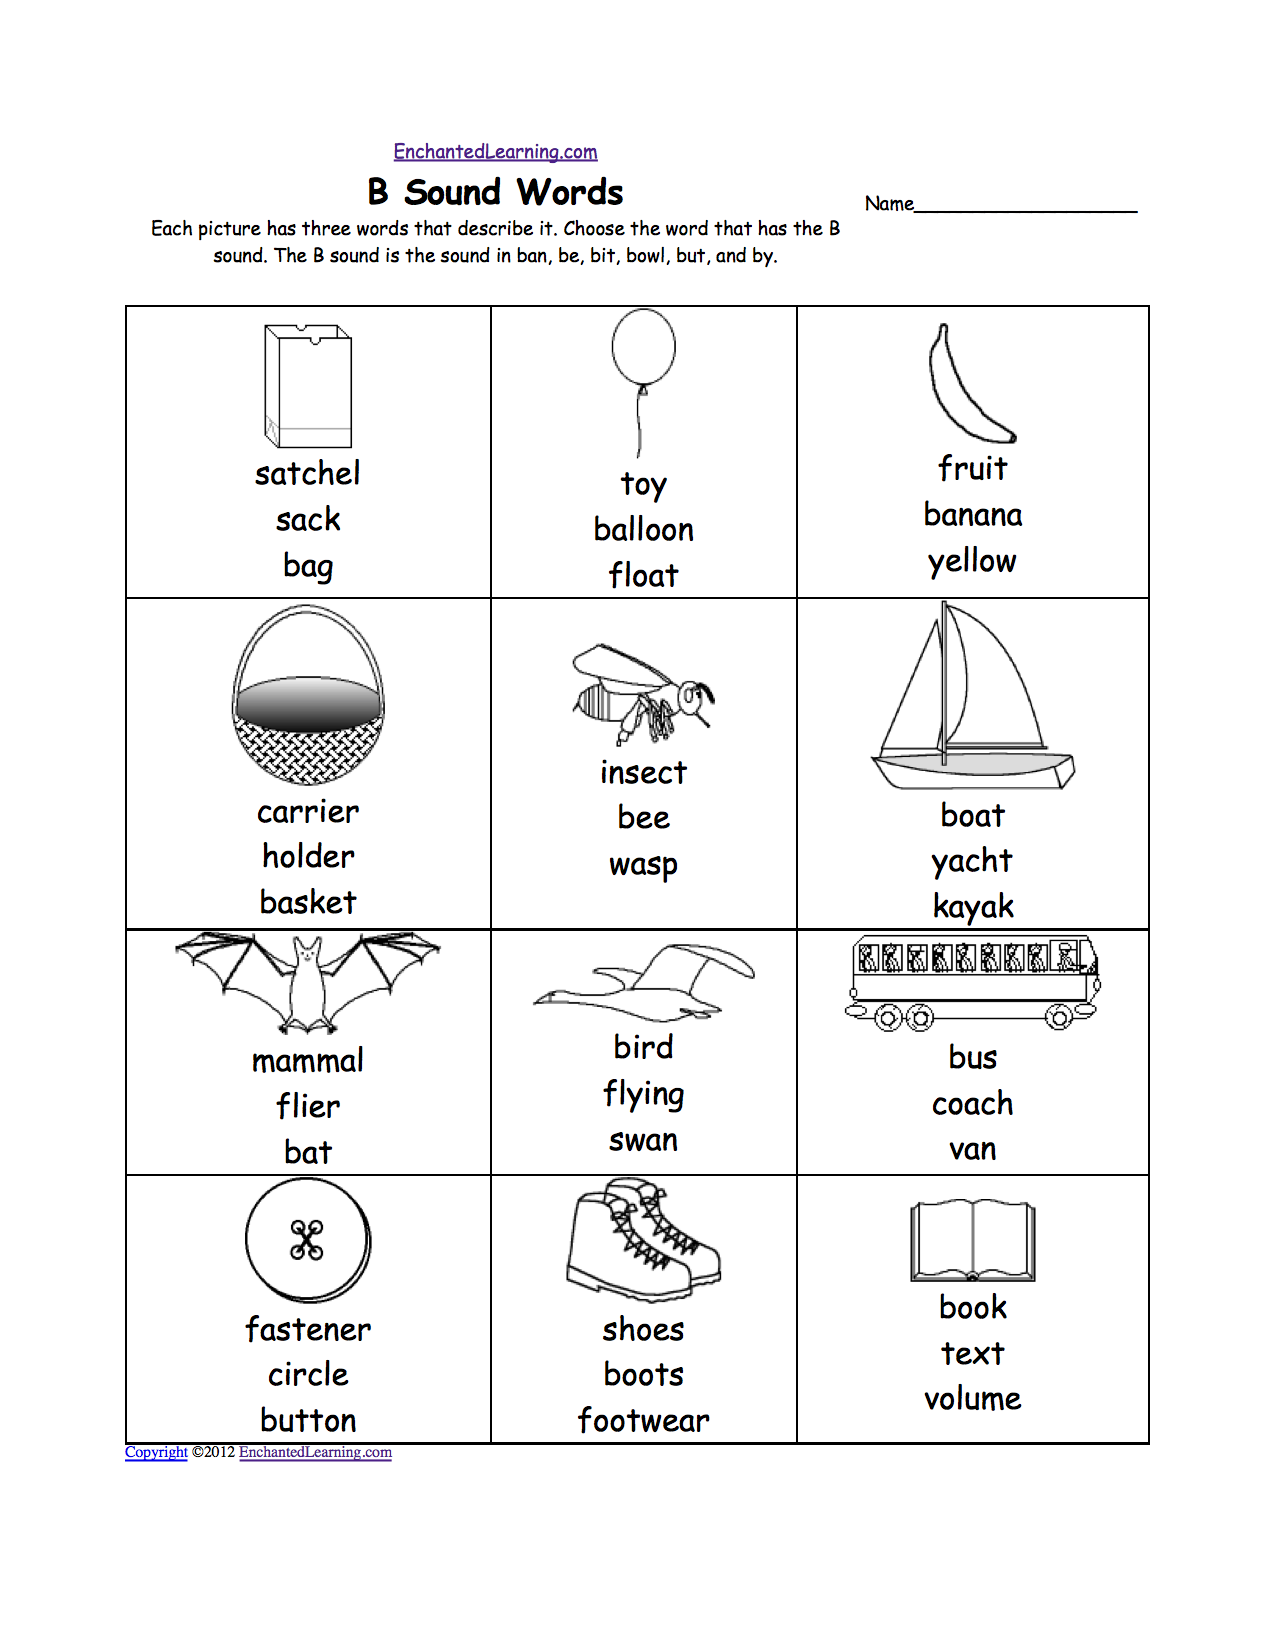 Weirdmailus  Mesmerizing Phonics Worksheets Multiple Choice Worksheets To Print  With Foxy Quotbquot Sound Phonics Worksheet Multiple Choice Each Picture Has Three Words That Describe It Choose The Word That Has A Quotbquot Sound The Quotbquot Sound Is The Sound  With Astounding Worksheets For Nursery Also Barnaby Bear Worksheets In Addition Tenses Worksheet For Grade  And Free English Worksheets For Year  As Well As Fractions Worksheets For Grade  Additionally Kind Of Sentences Worksheets From Enchantedlearningcom With Weirdmailus  Foxy Phonics Worksheets Multiple Choice Worksheets To Print  With Astounding Quotbquot Sound Phonics Worksheet Multiple Choice Each Picture Has Three Words That Describe It Choose The Word That Has A Quotbquot Sound The Quotbquot Sound Is The Sound  And Mesmerizing Worksheets For Nursery Also Barnaby Bear Worksheets In Addition Tenses Worksheet For Grade  From Enchantedlearningcom